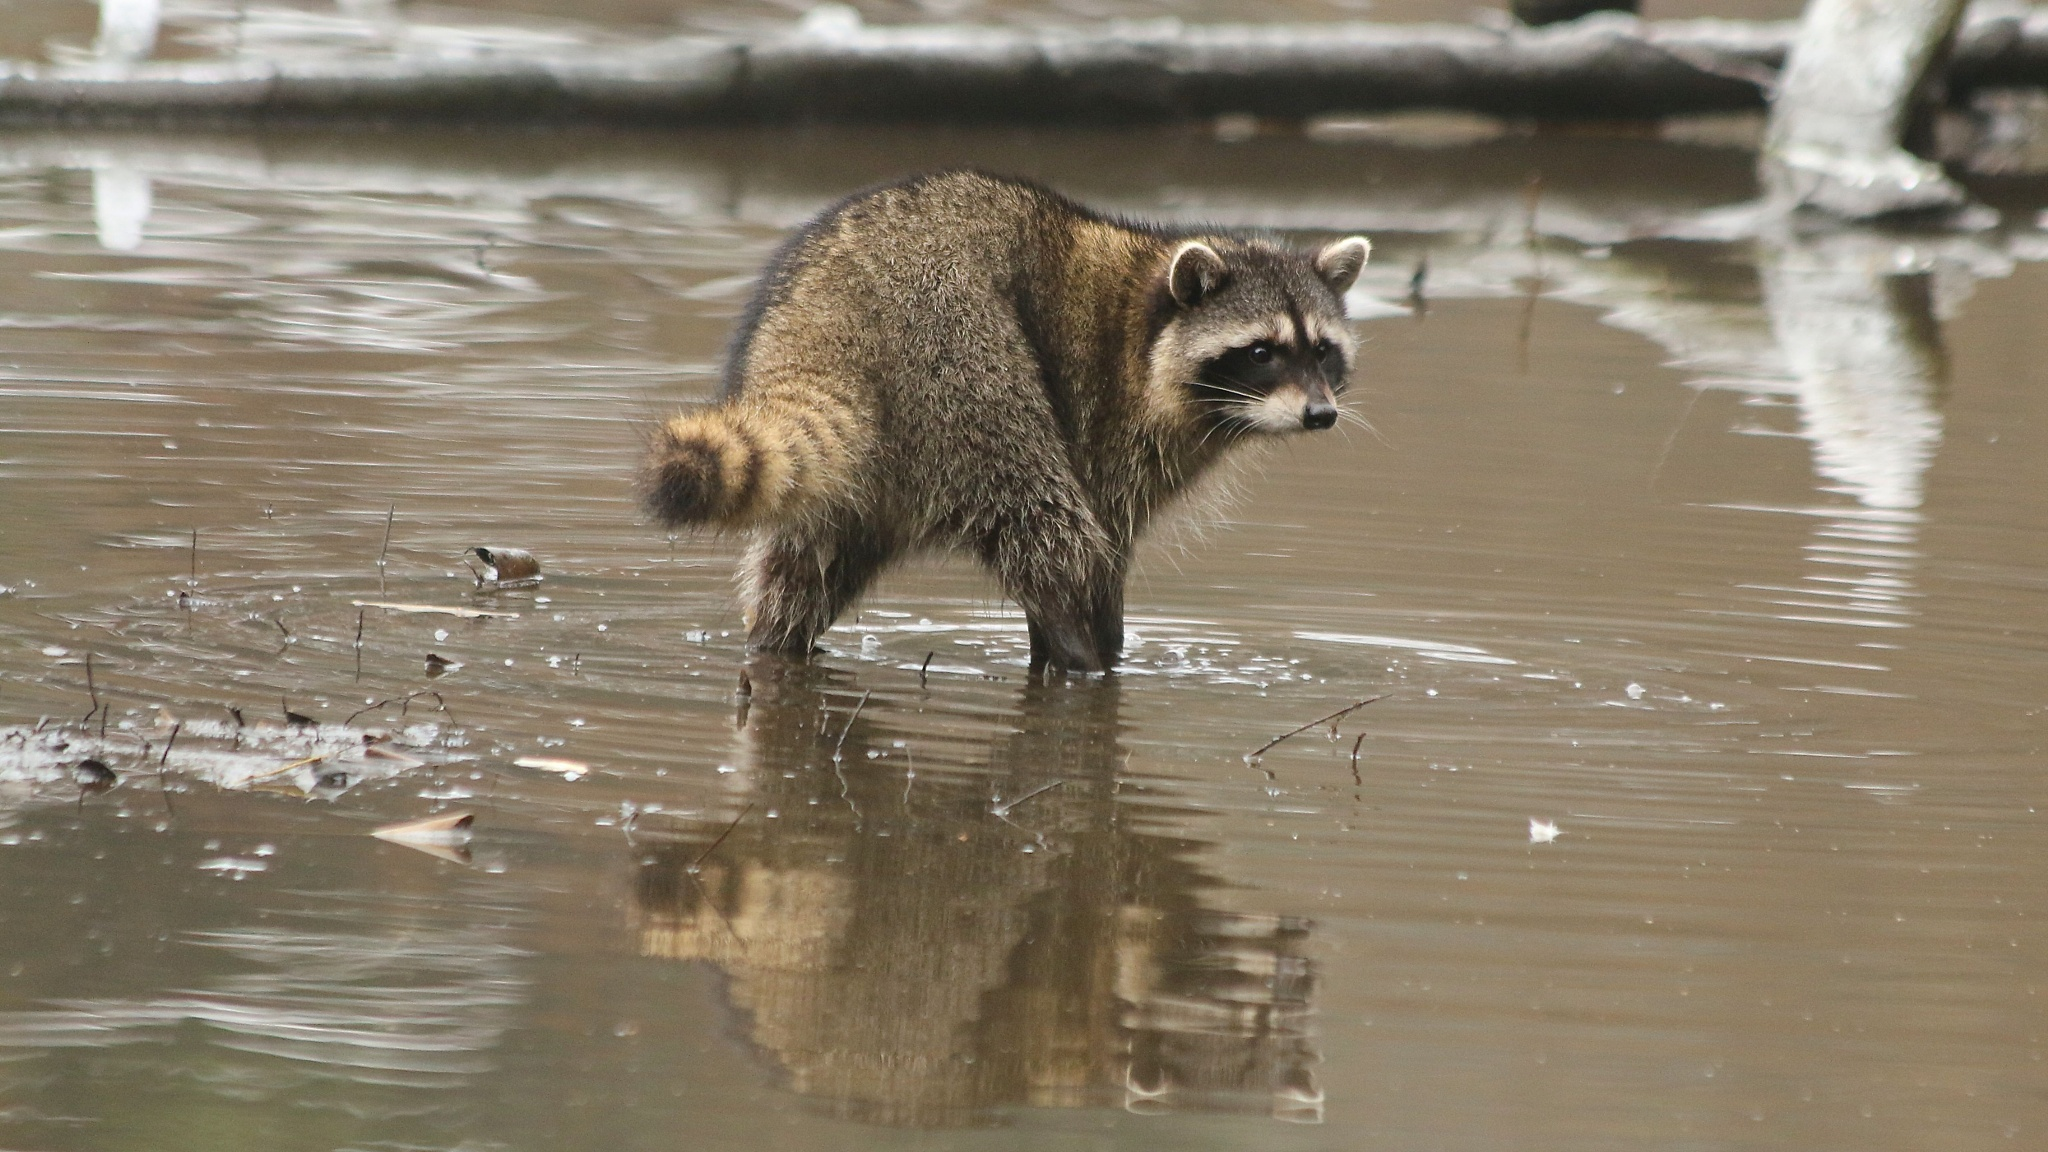 Raccoon in Icy Cold Water by thurd